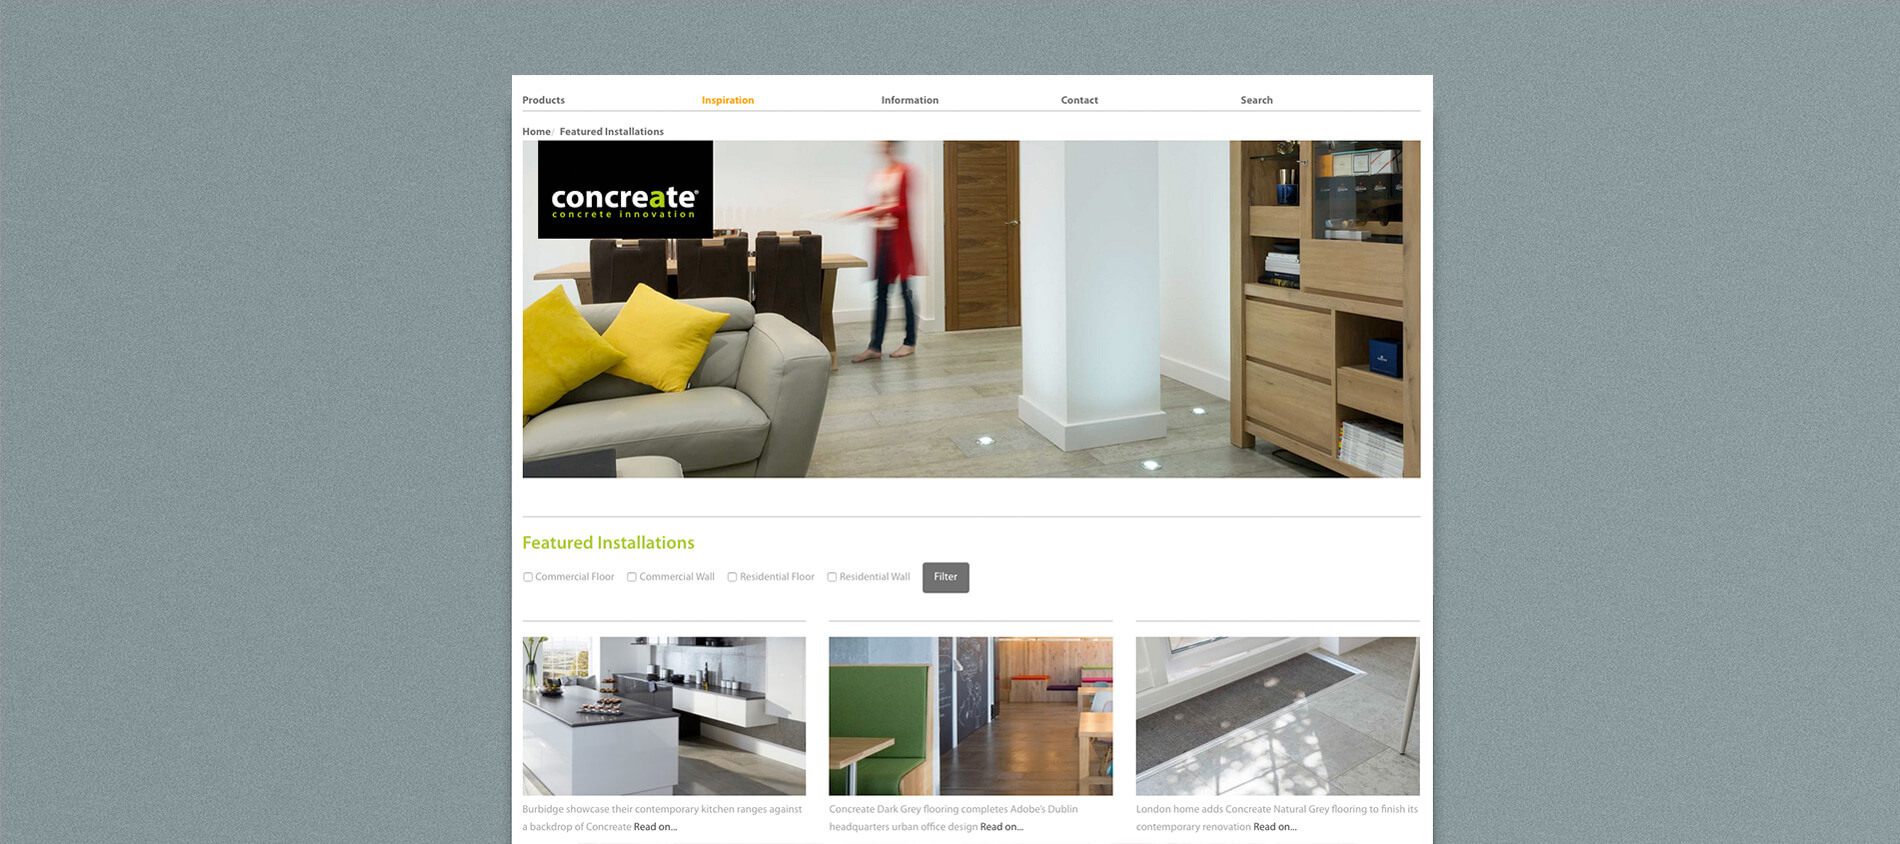 Concreate website